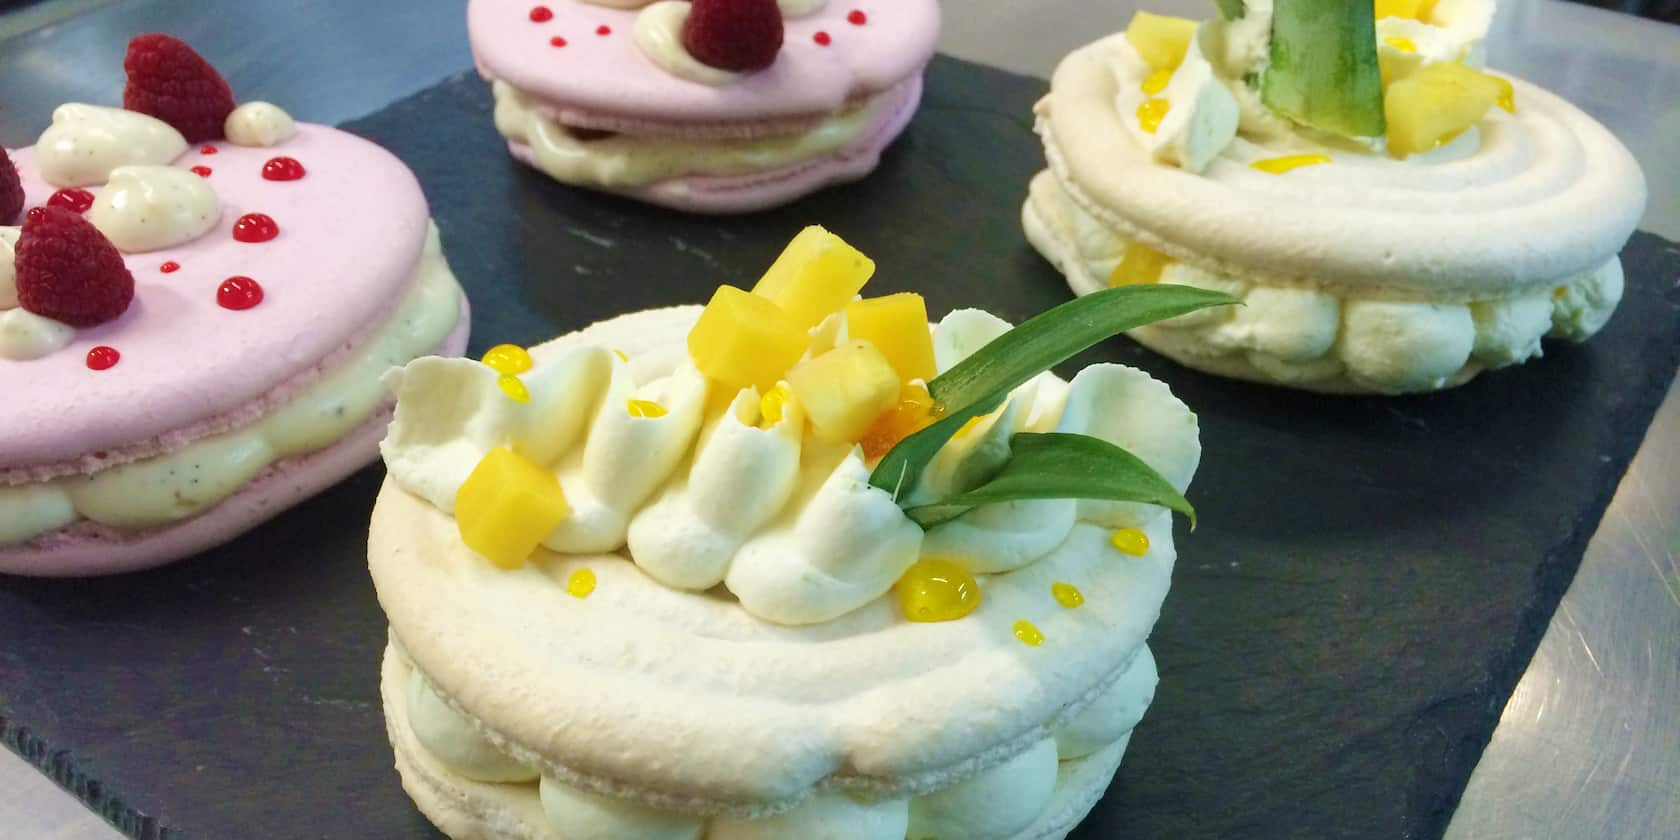 A tray of 4 decorated macarons